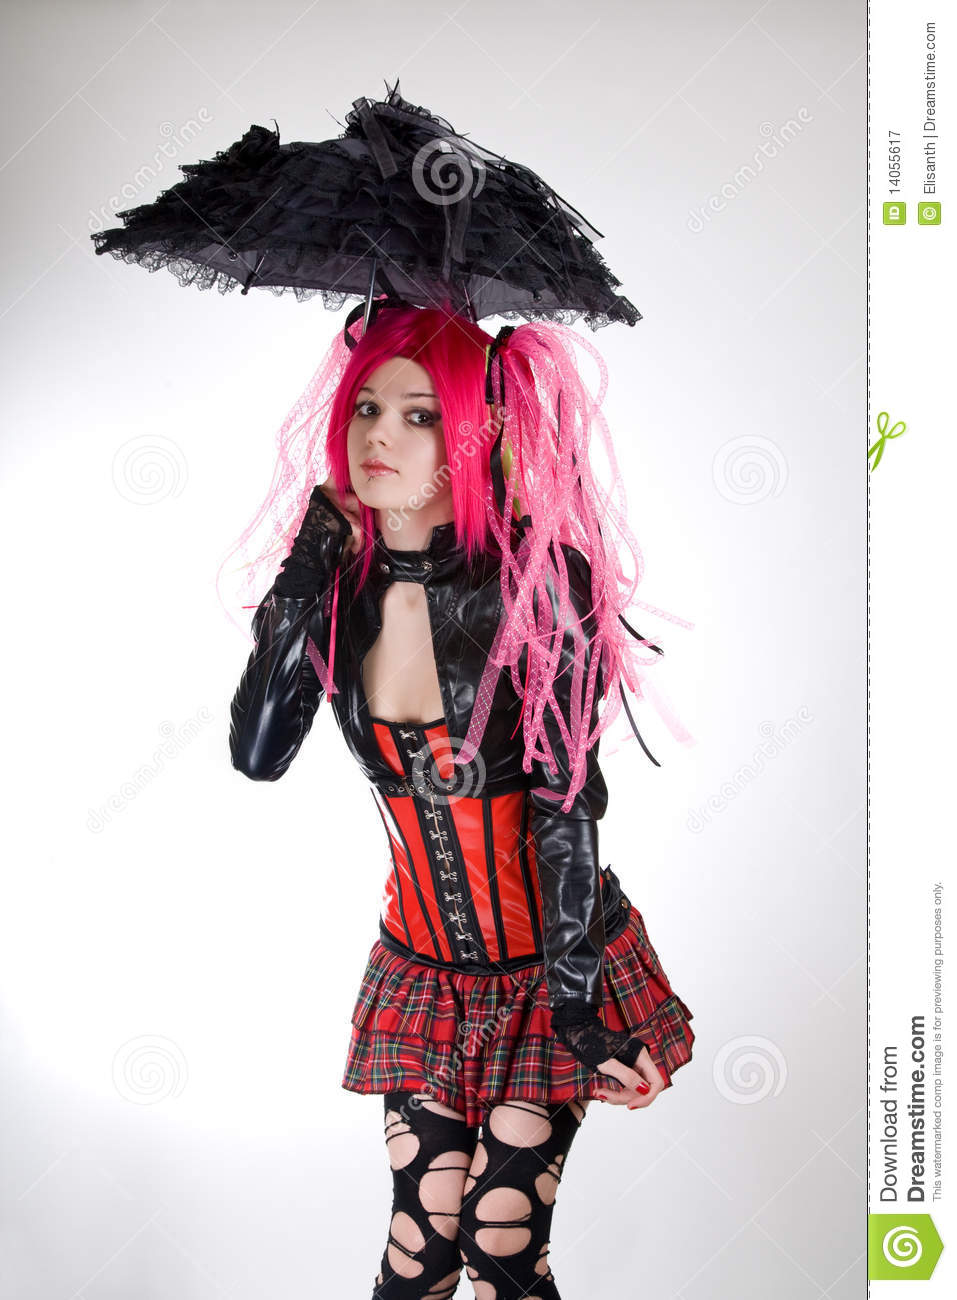 funny naked pictures of gothic girl